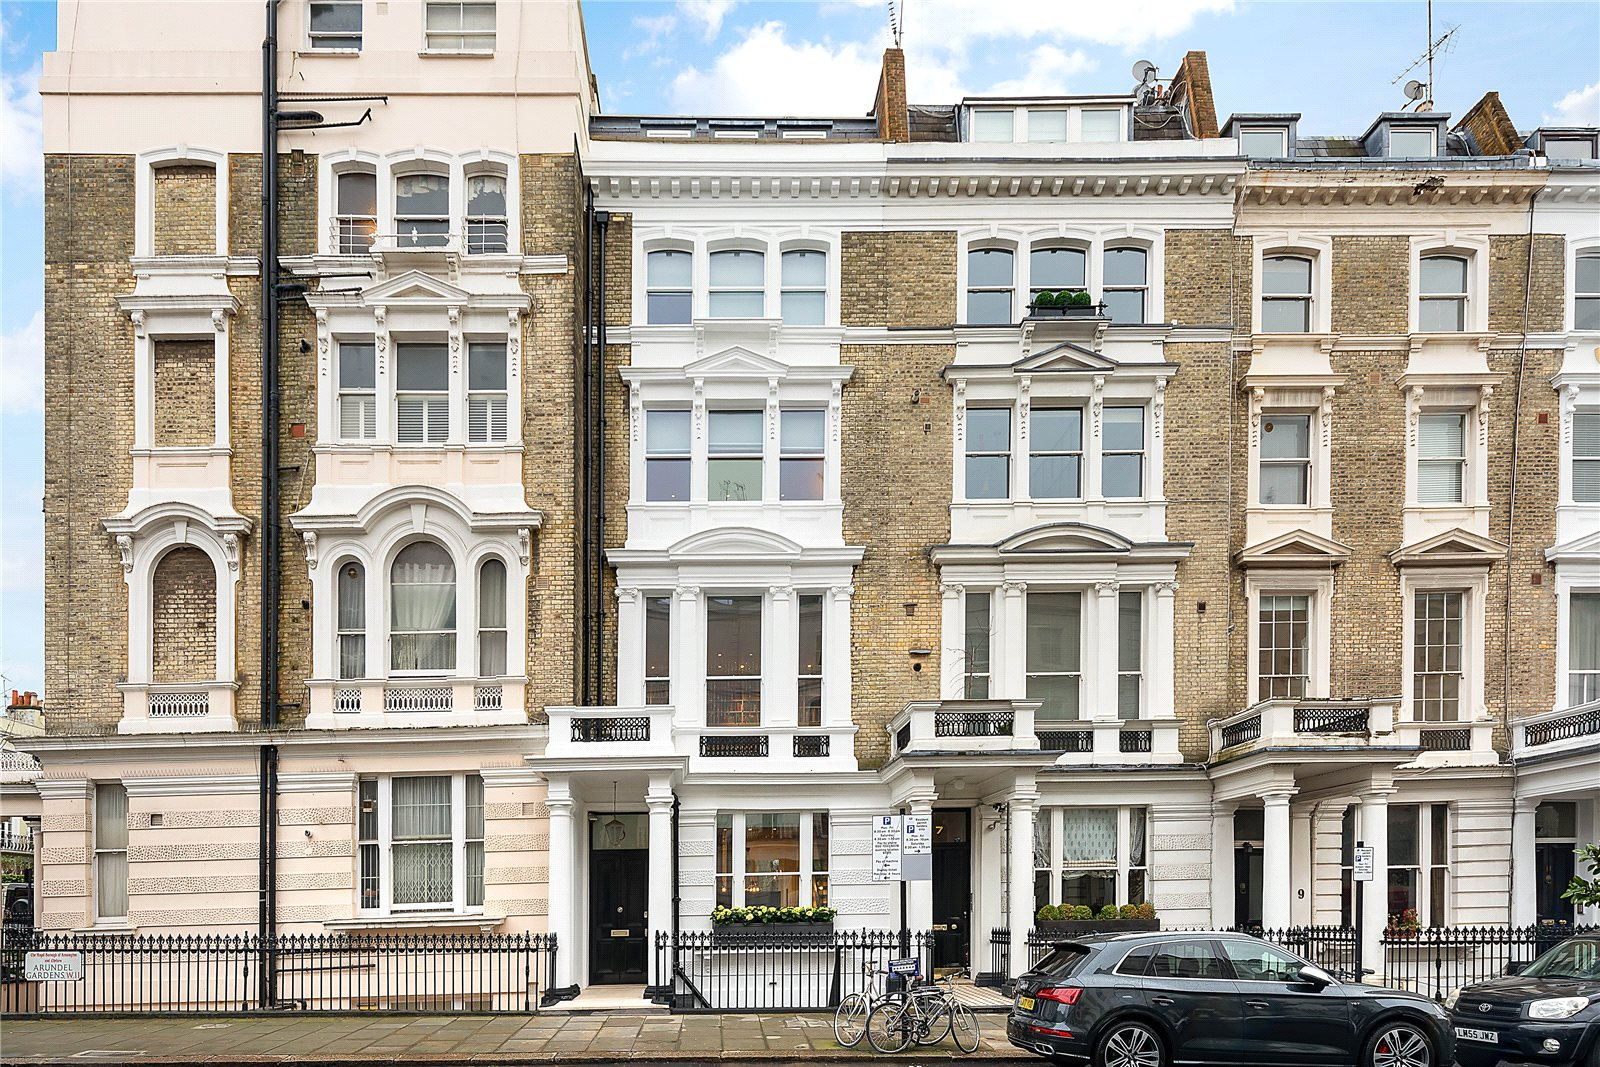 Частный дом для того Продажа на Arundel Gardens, Notting Hill, London, W11 Notting Hill, London, Англия